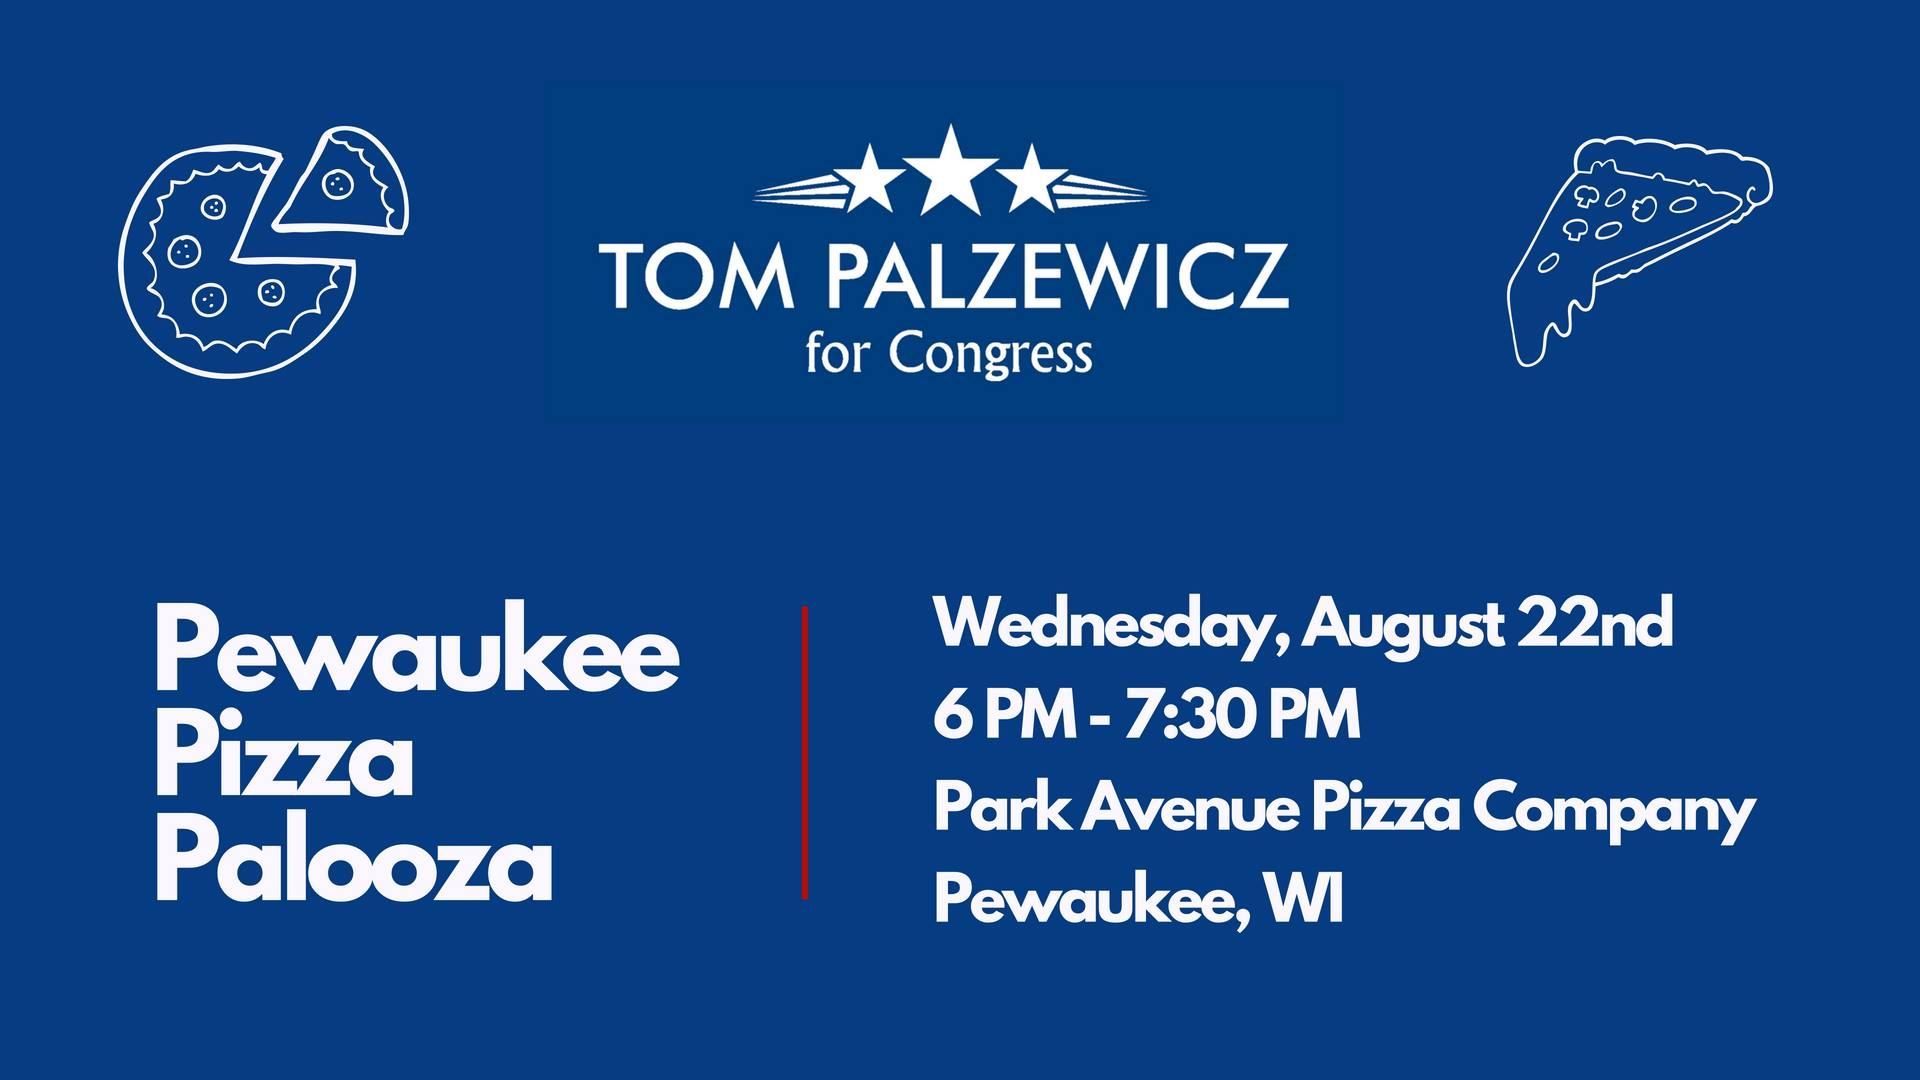 You're invited to join Congressional Candidate Tom Palzewicz (WI-05) for food, drinks, and fun at our Pewaukee Pizza Palooza!   Join us to support Tom and learn more about why he's running. Enjoy time with friends who understand it's time for responsible leadership in Wisconsin.   Wednesday, August 22nd,  6:00 PM to 7:30 PM   Park Avenue Pizza Company:  121 Park Ave, Pewaukee, WI 53072, USA  Contribution Levels:  Host: $1000 | Sponsor: 500 | Activist: $250 | Friend: $100 | Voter: $50  Suggested Donation: $25  Contributions of any size are gratefully accepted! Make a secure contribution today.